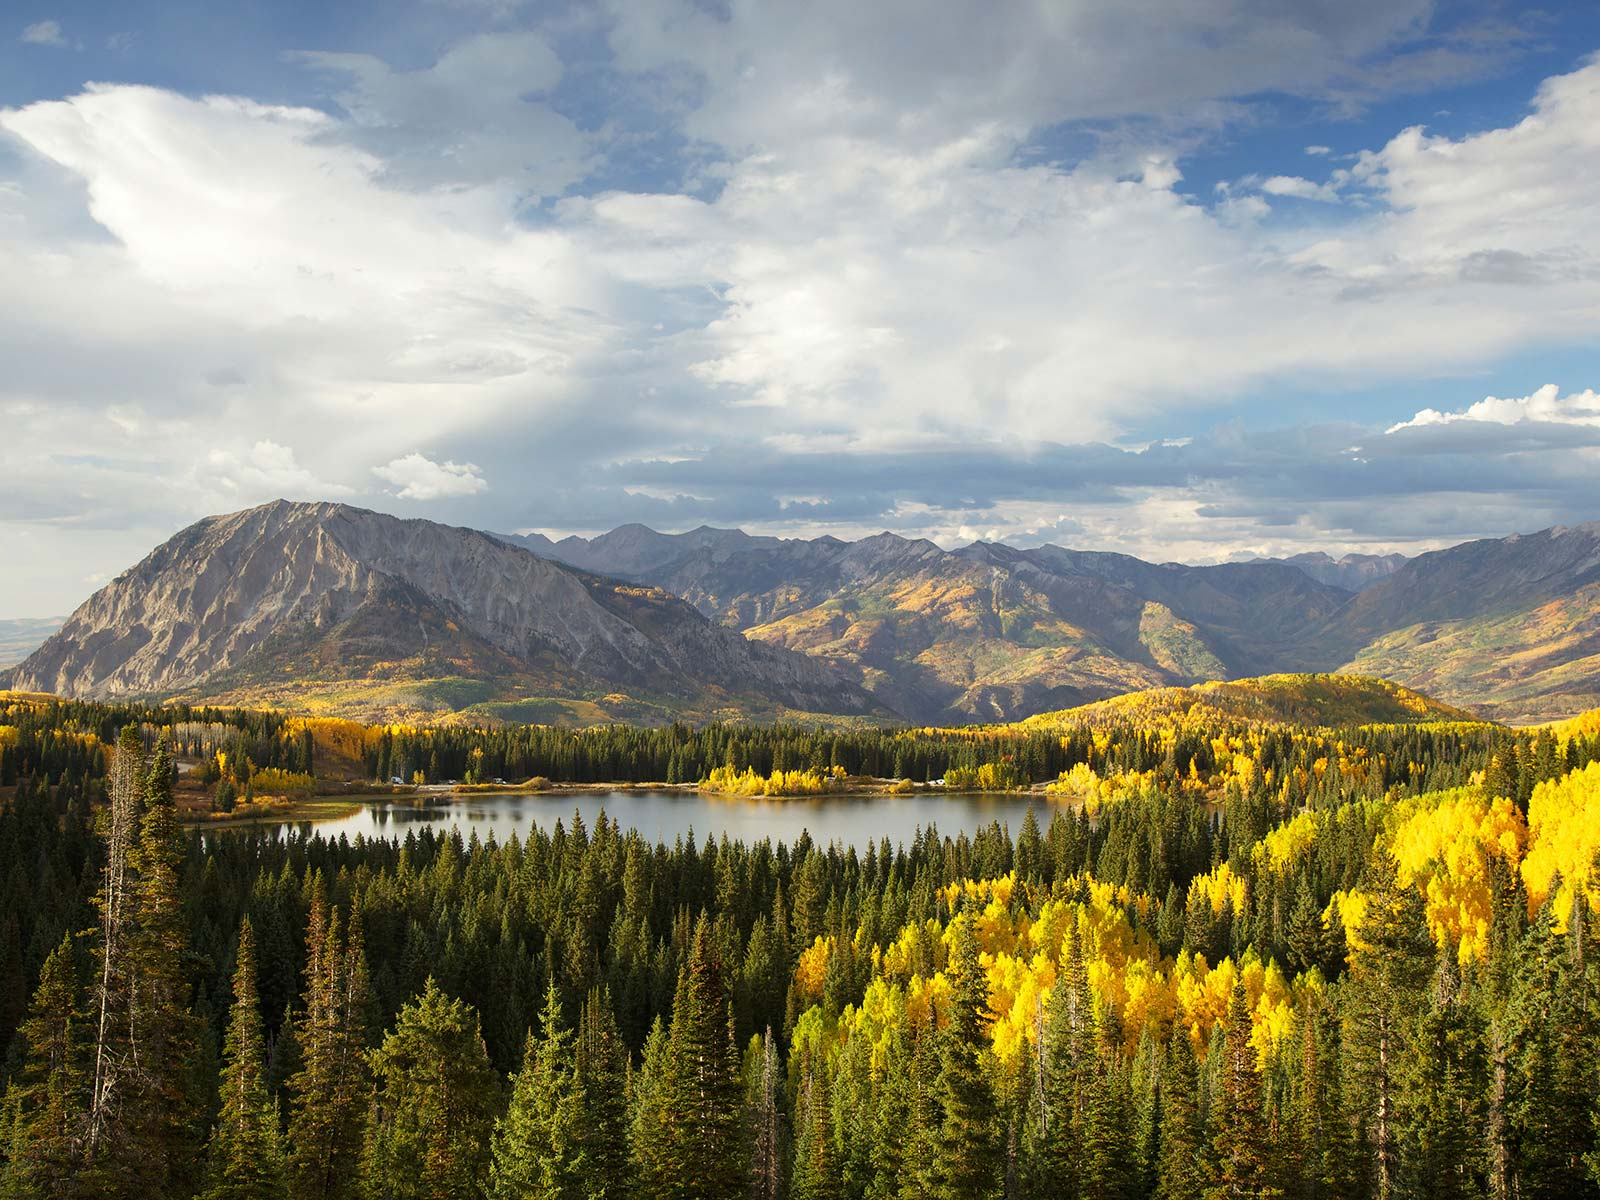 Autumn Trees and Lake in Colorado Rocky Mountains